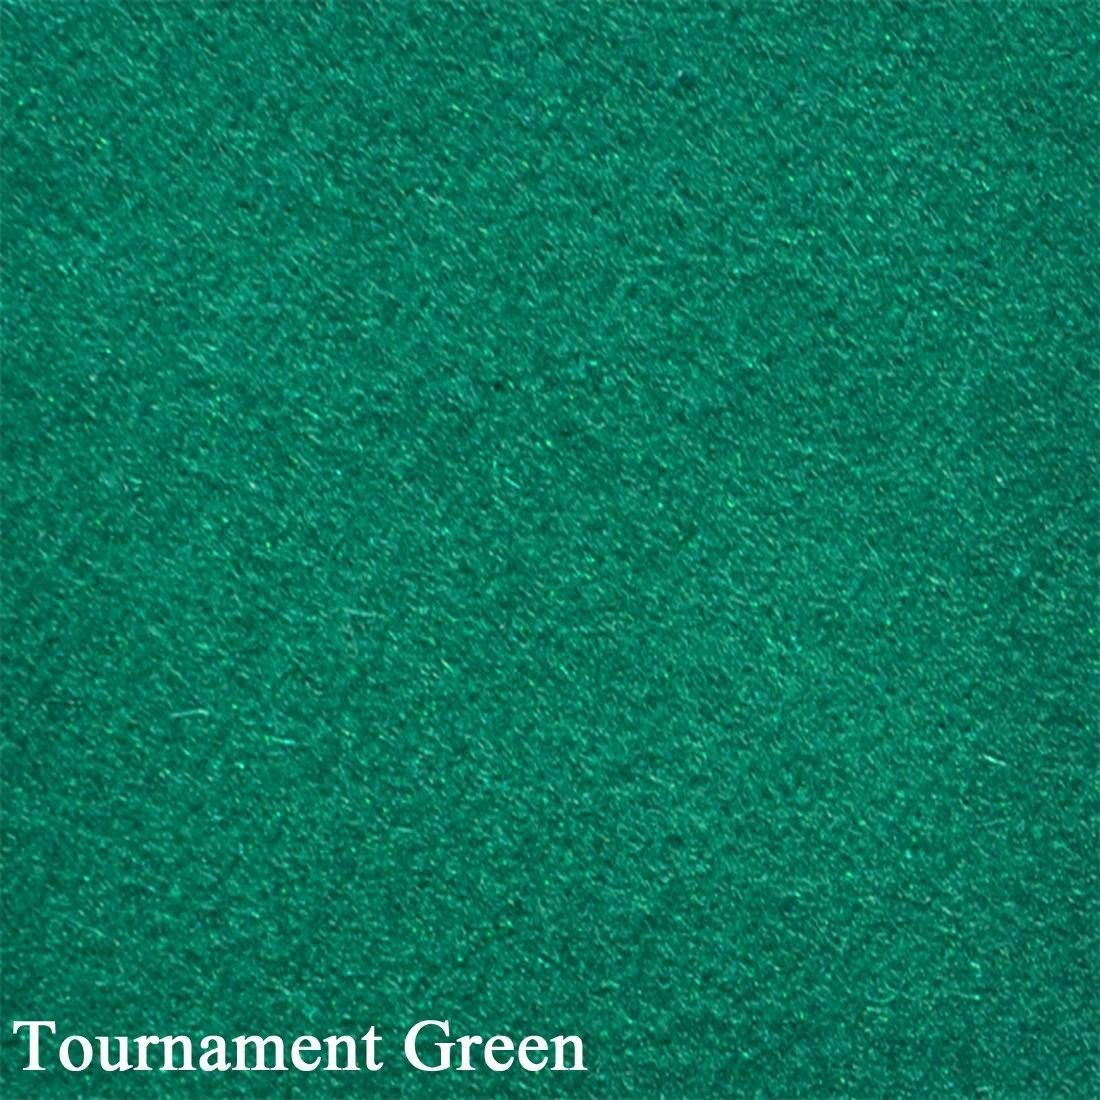 8 ft pool billiard table replacement premier cloth felt - Pool table green felt ...